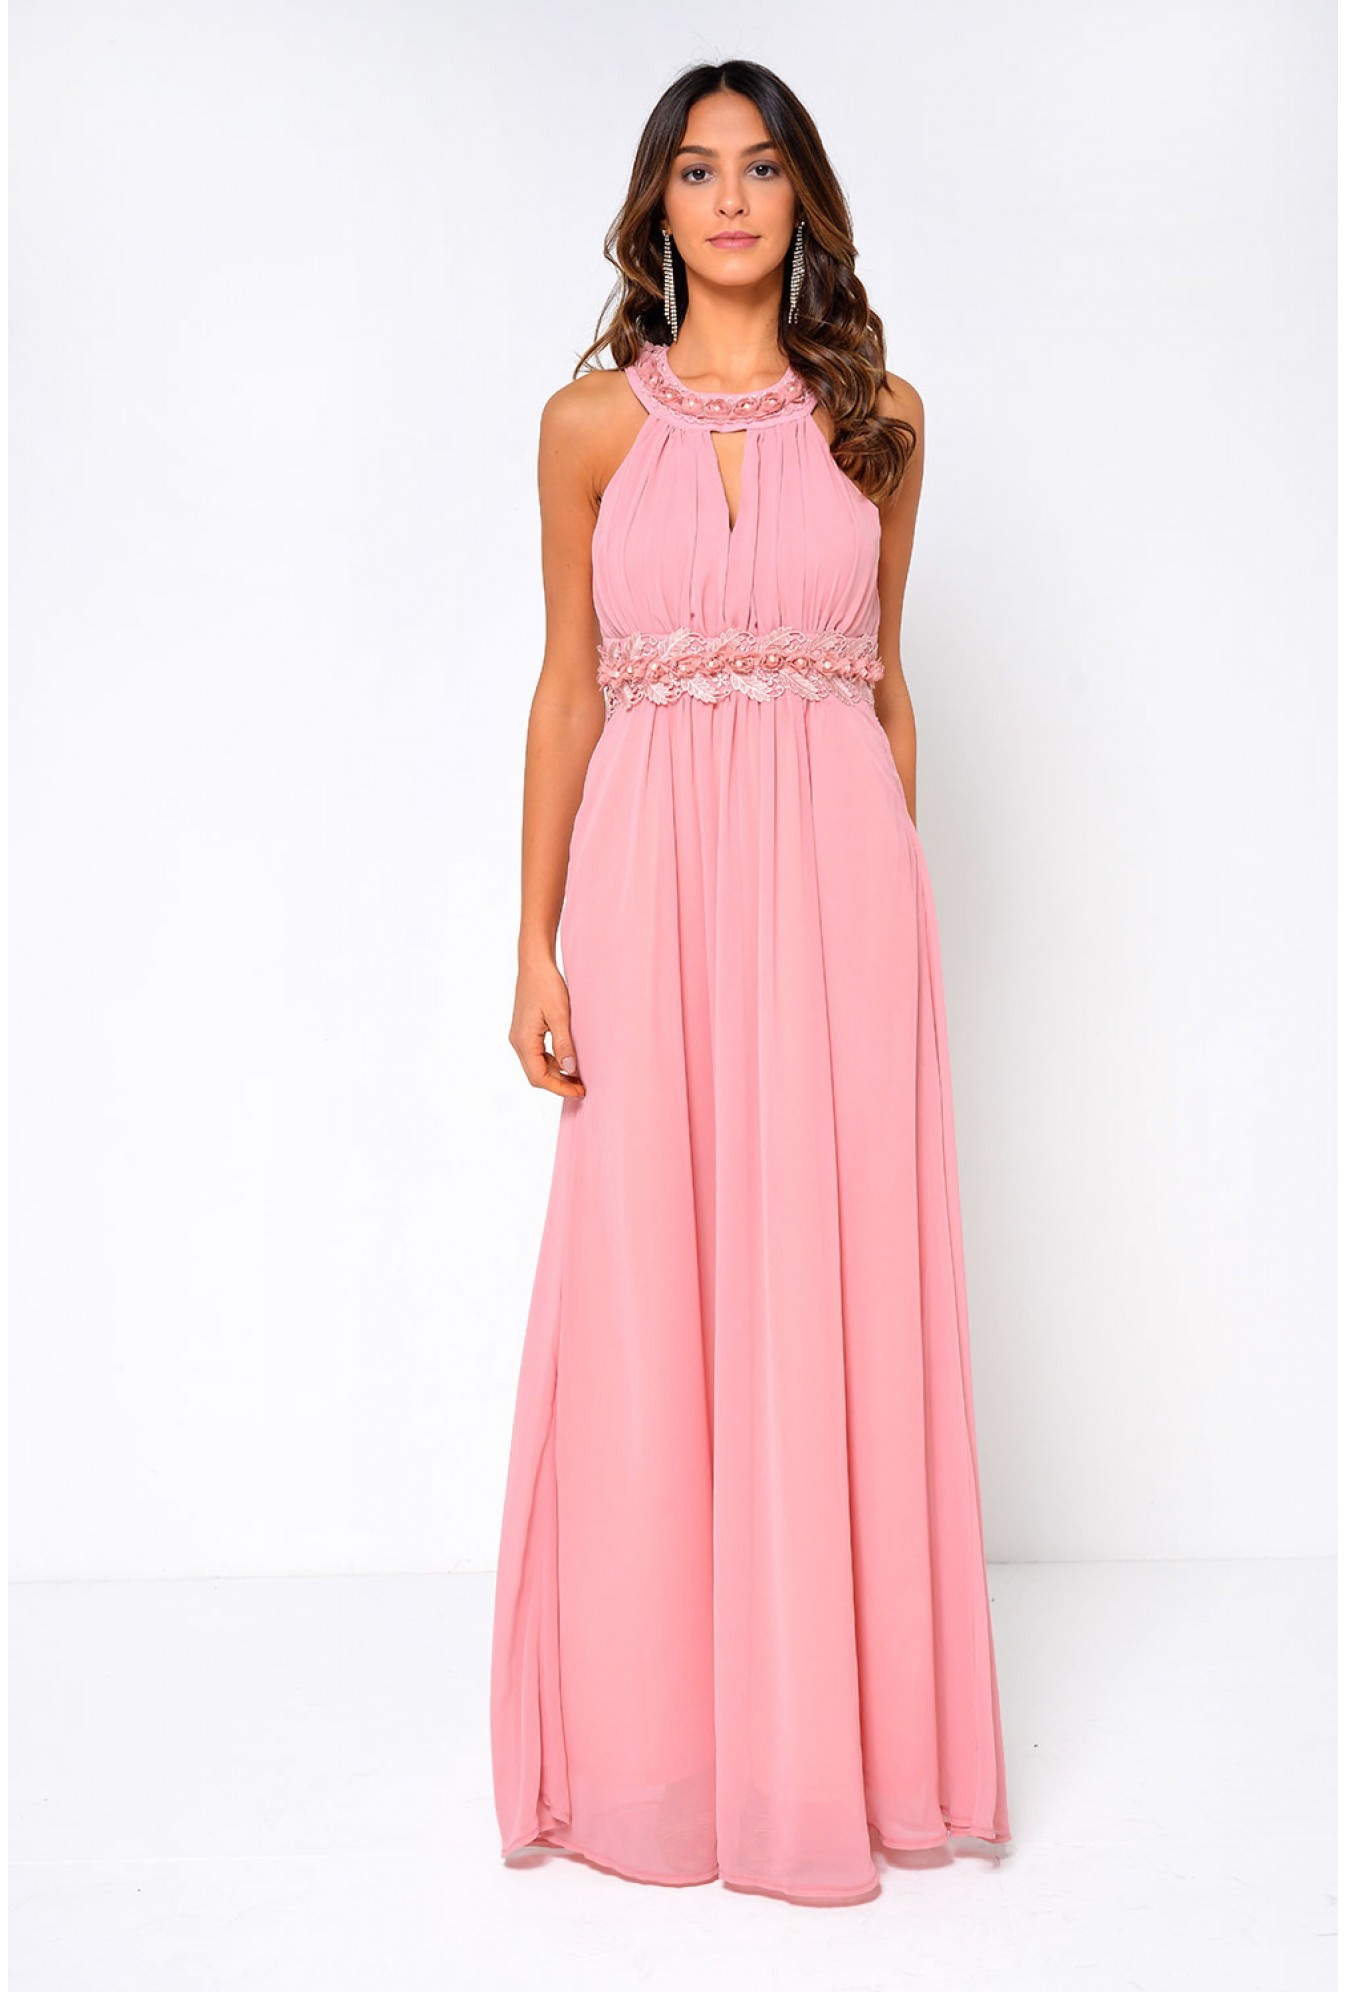 e466fdd169c8 Marc Angelo Nadia Halter Neck Maxi Dress in Pink | iCLOTHING